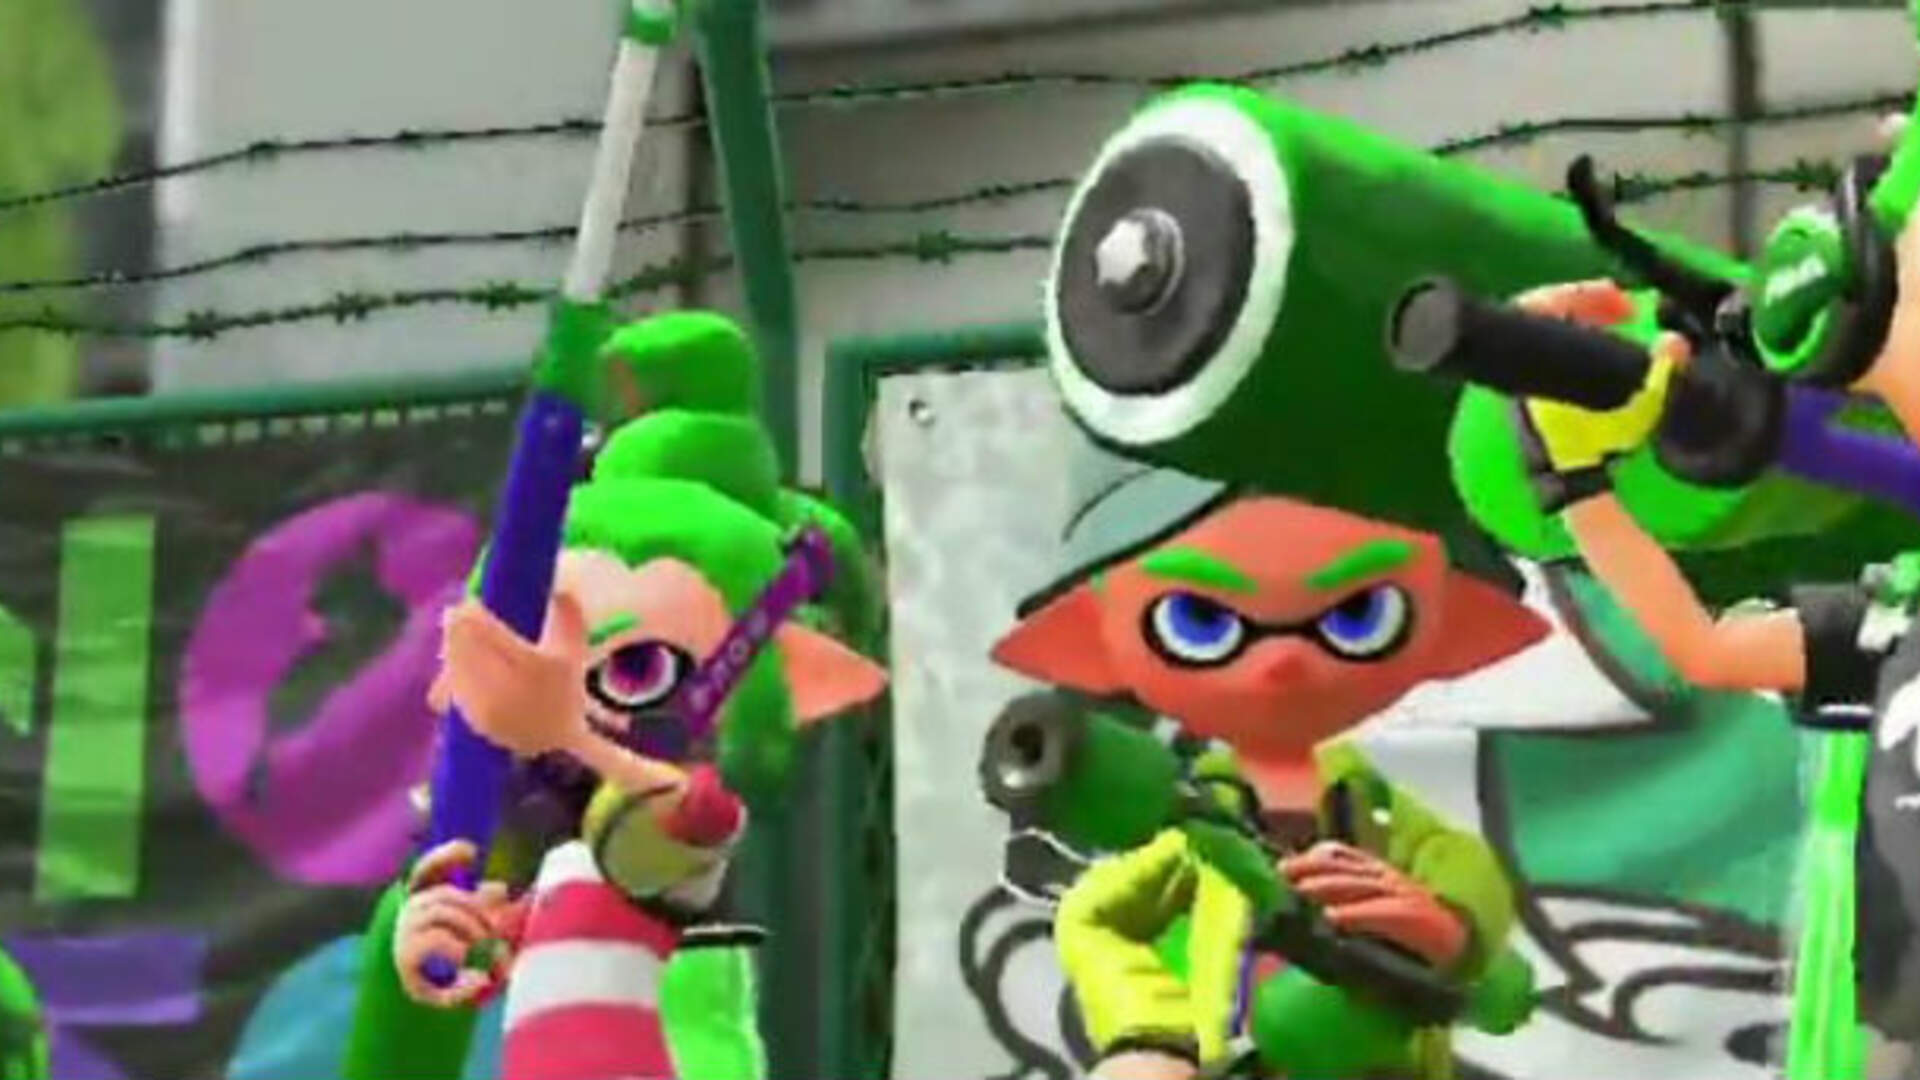 Splatoon 2: Here's What's New